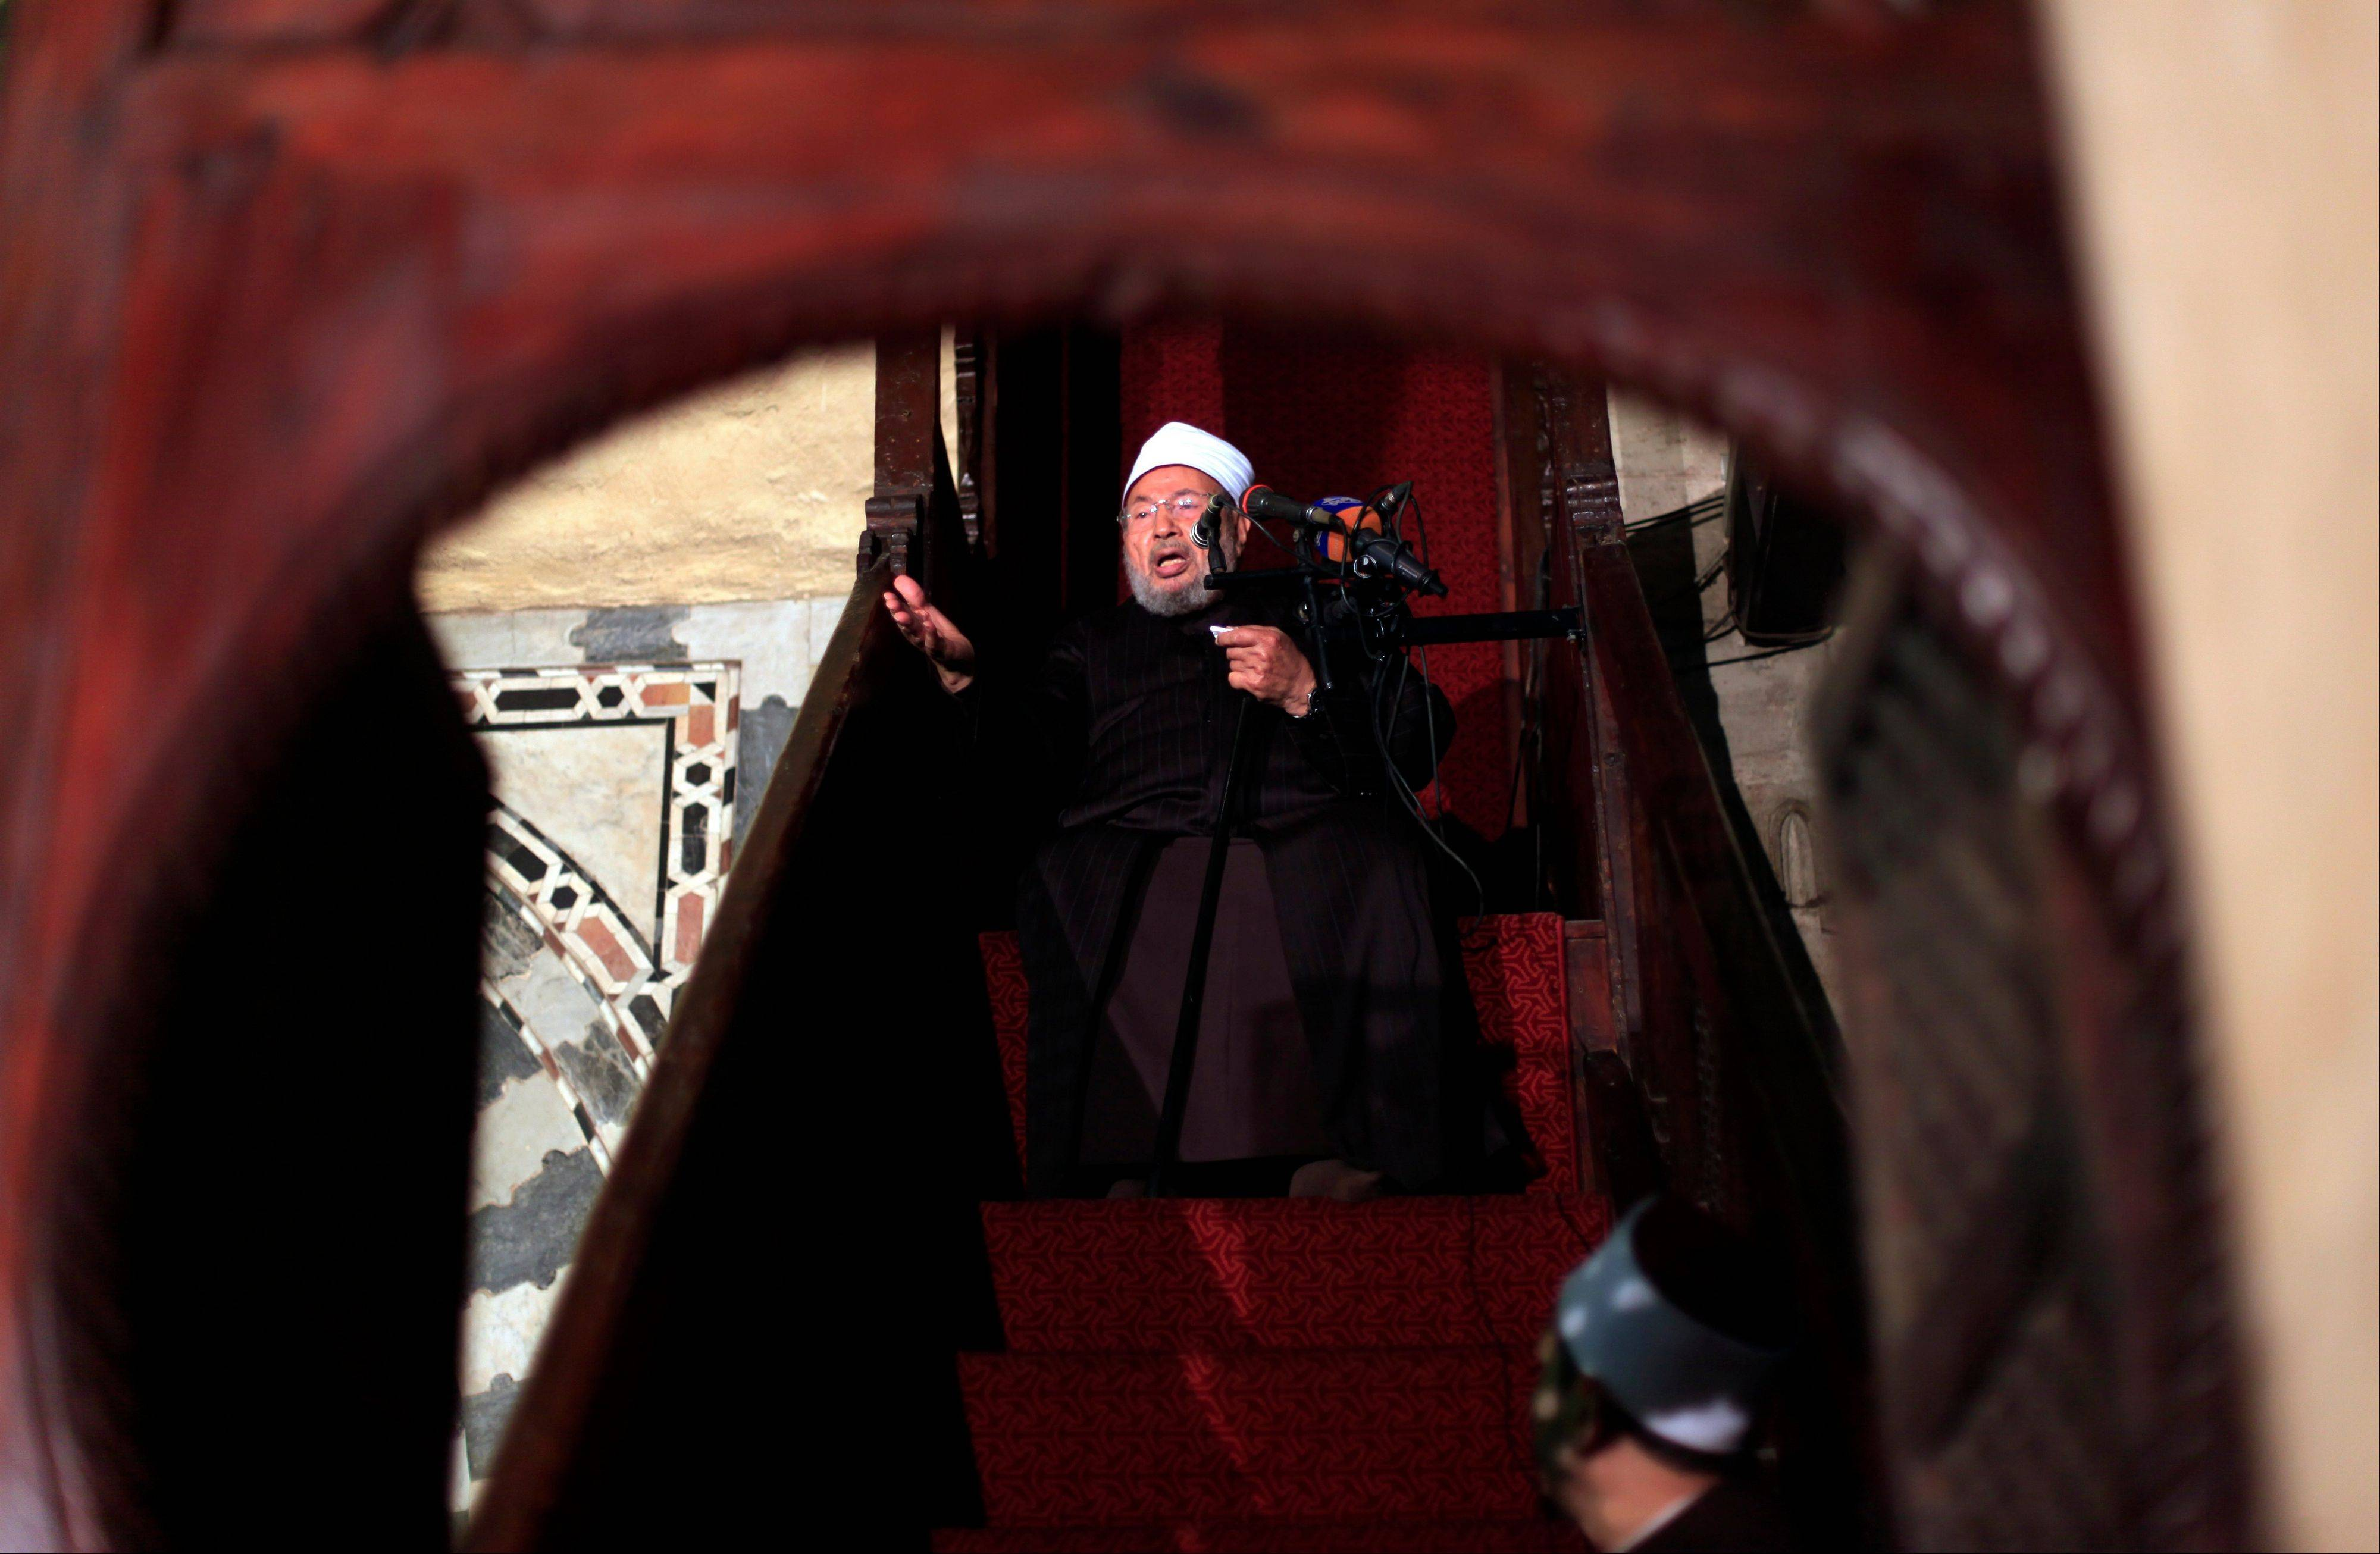 Associated Press/Dec. 28, 2012Shiekh Youssef al-Qaradawi gives the sermon during the Friday prayer at Al-Azhar mosque in Cairo, Egypt. Syria's civil war has morphed into a proxy fight in which Shiite Iran has strongly backed Assad, while Sunni Arab nations have backed rebels.